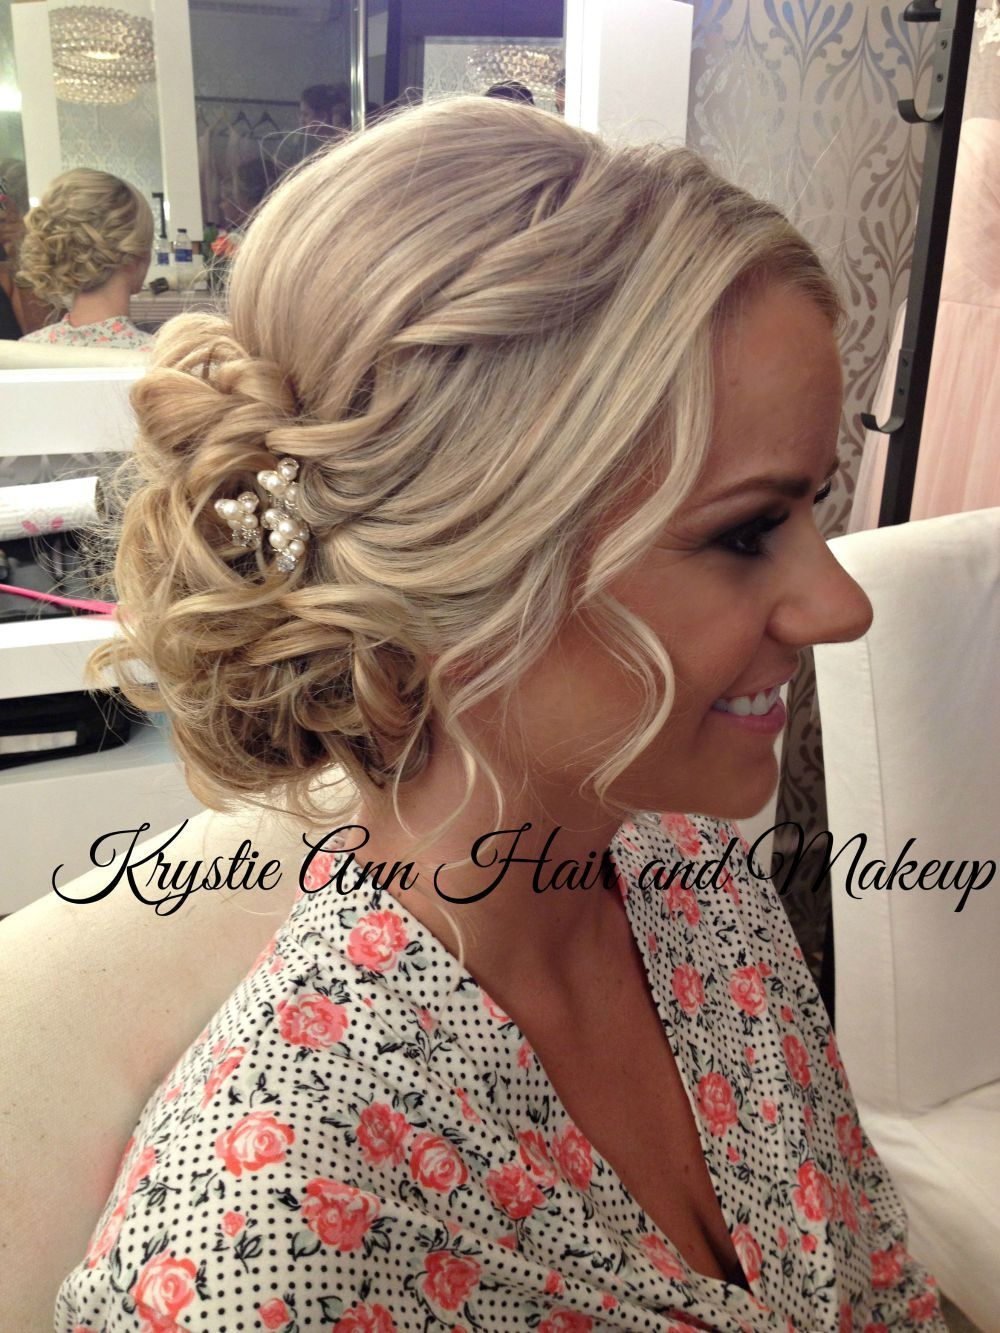 romantic wedding hairstyles best photos - page 2 of 4